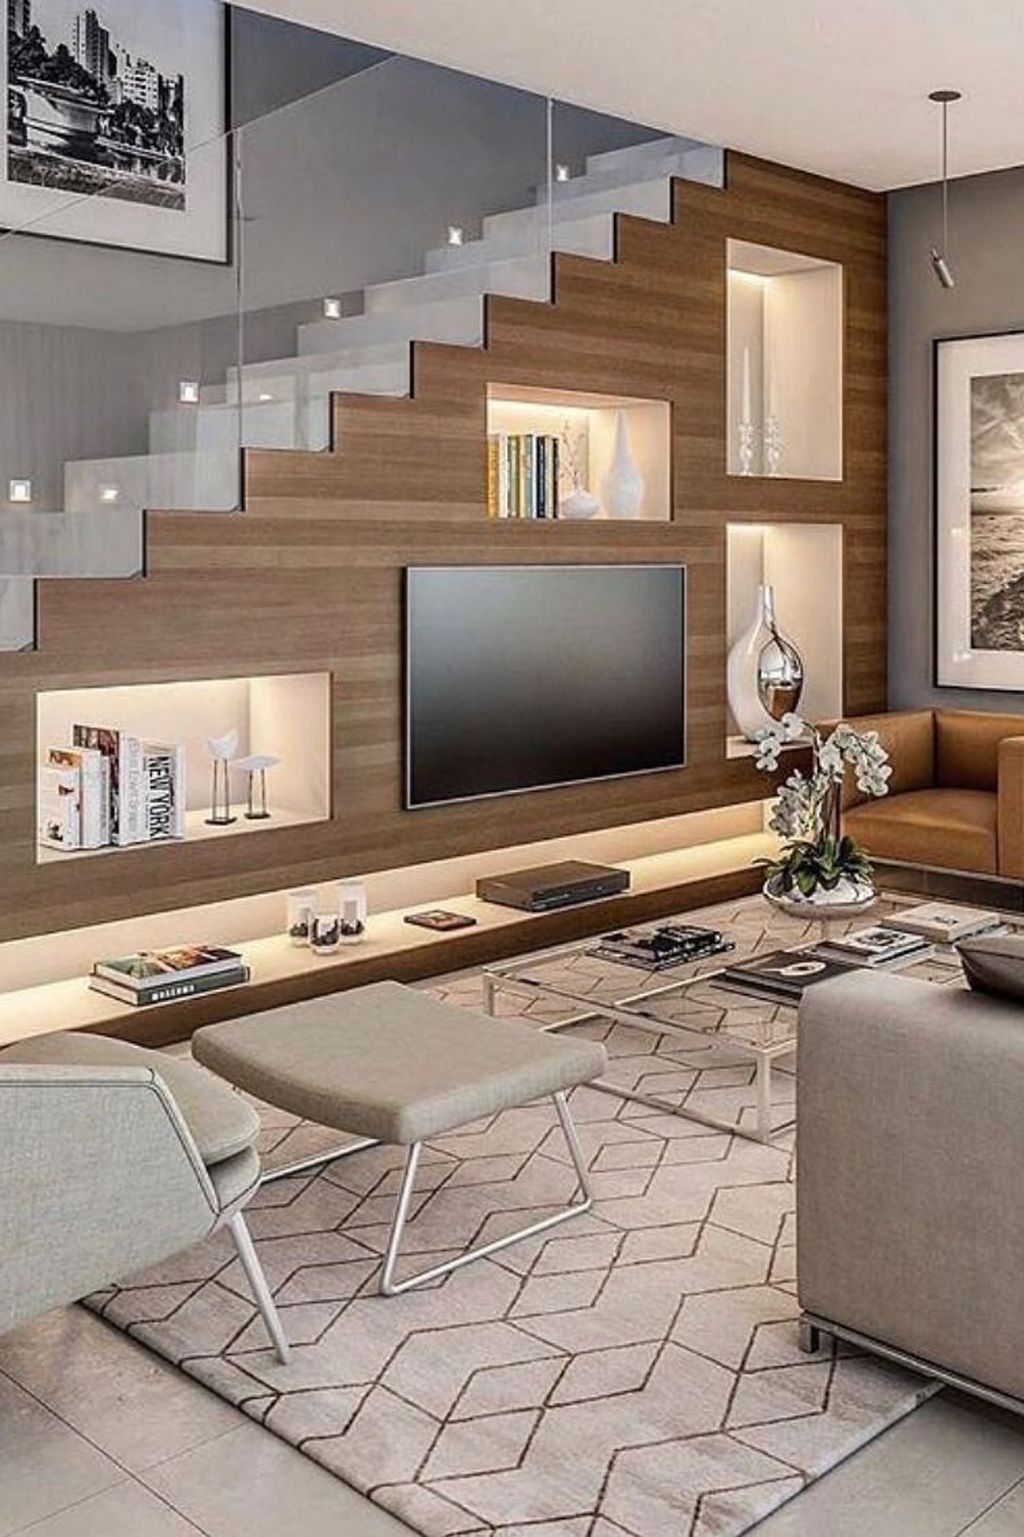 46 Outstanding Stair Design Ideas That Are Right For Your Living | Living Room Design Under Stairs | Kid | Space Saving | Luxury Modern | Small Space | Storage